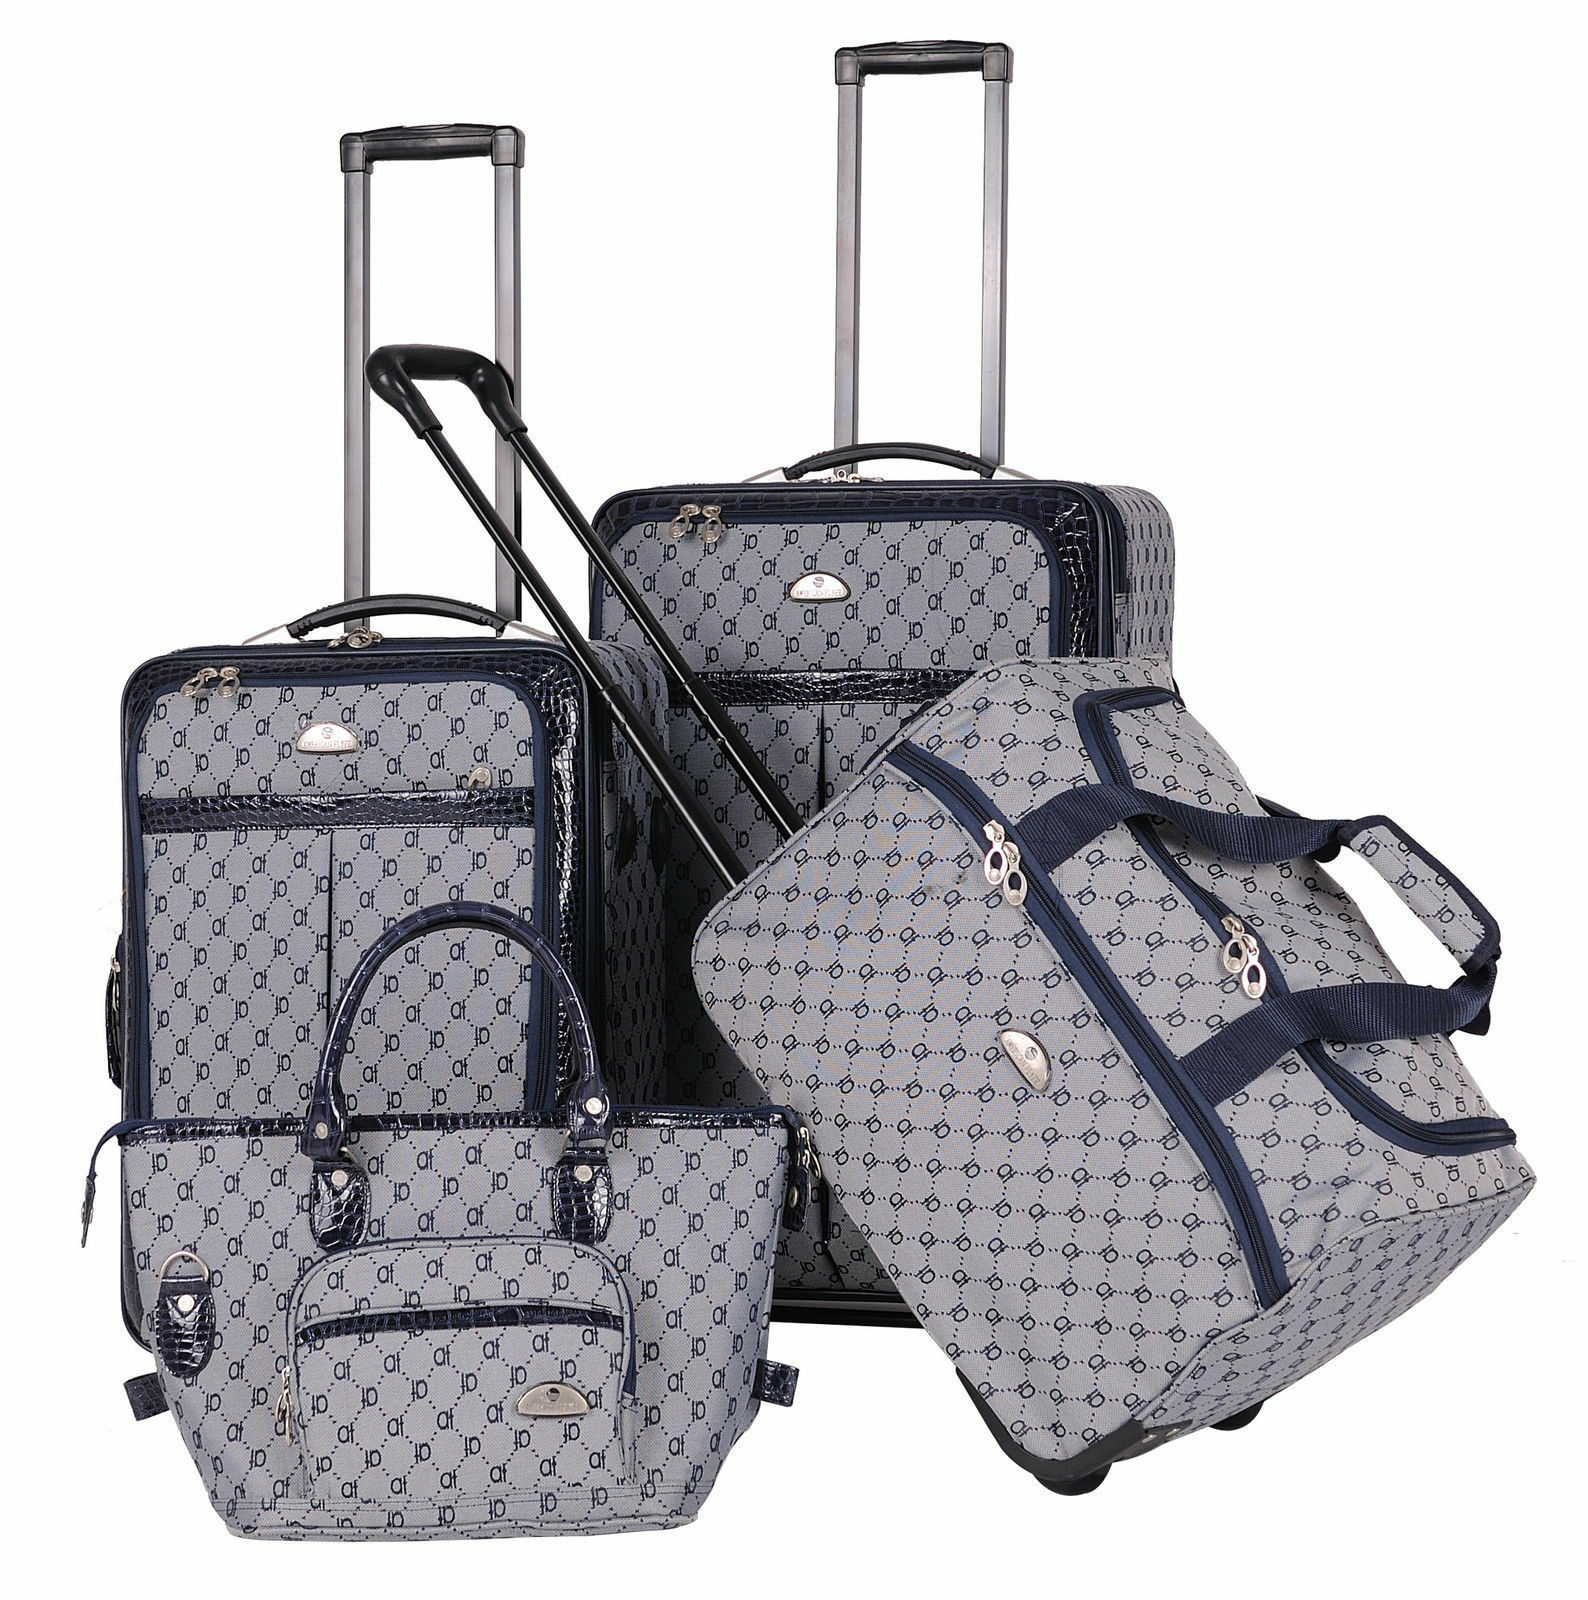 Top 10 Luggage Sets | eBay